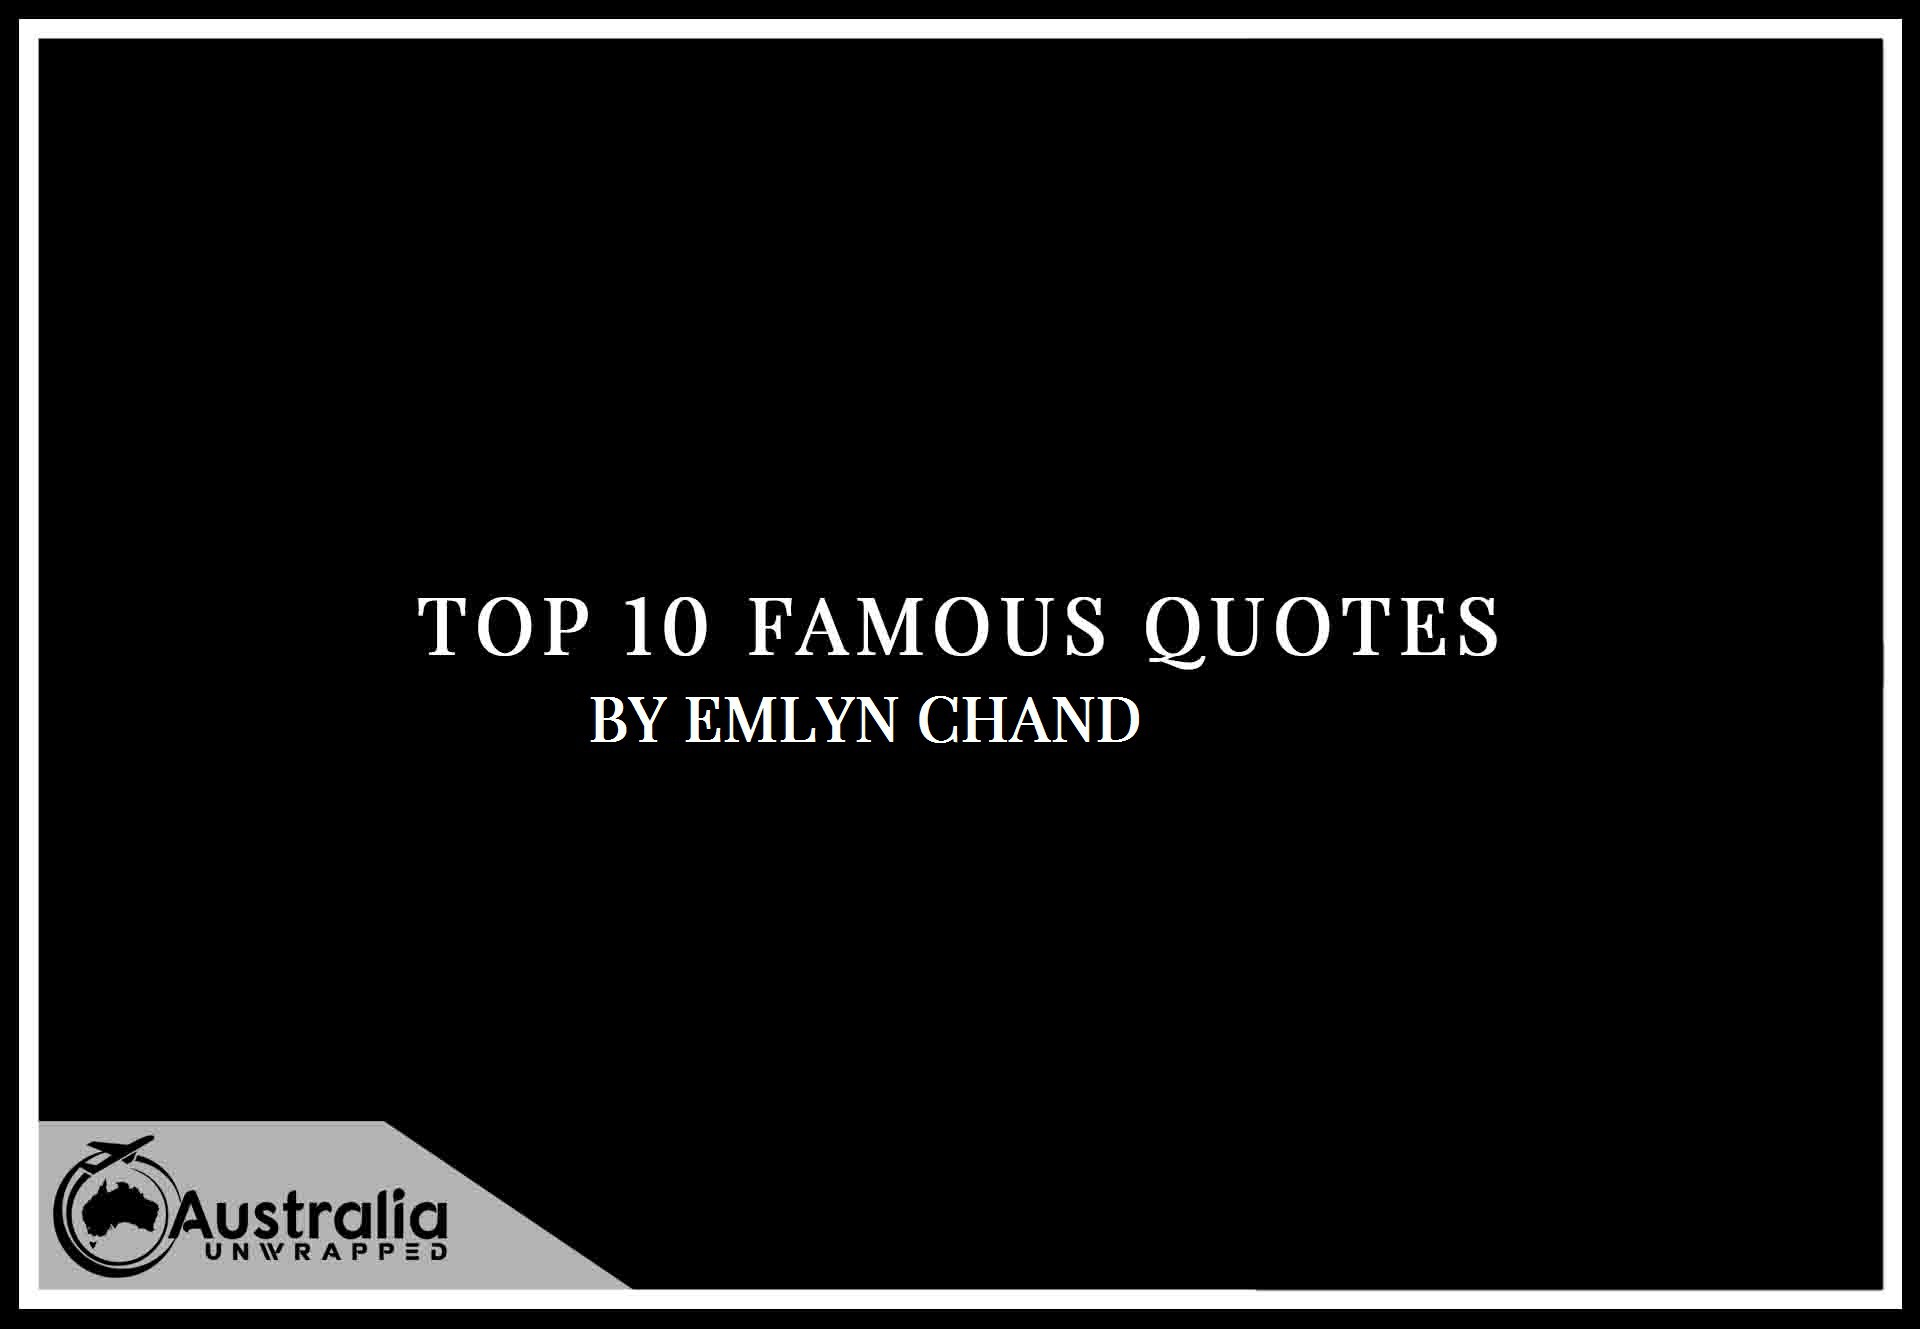 Emlyn Chand's Top 10 Popular and Famous Quotes